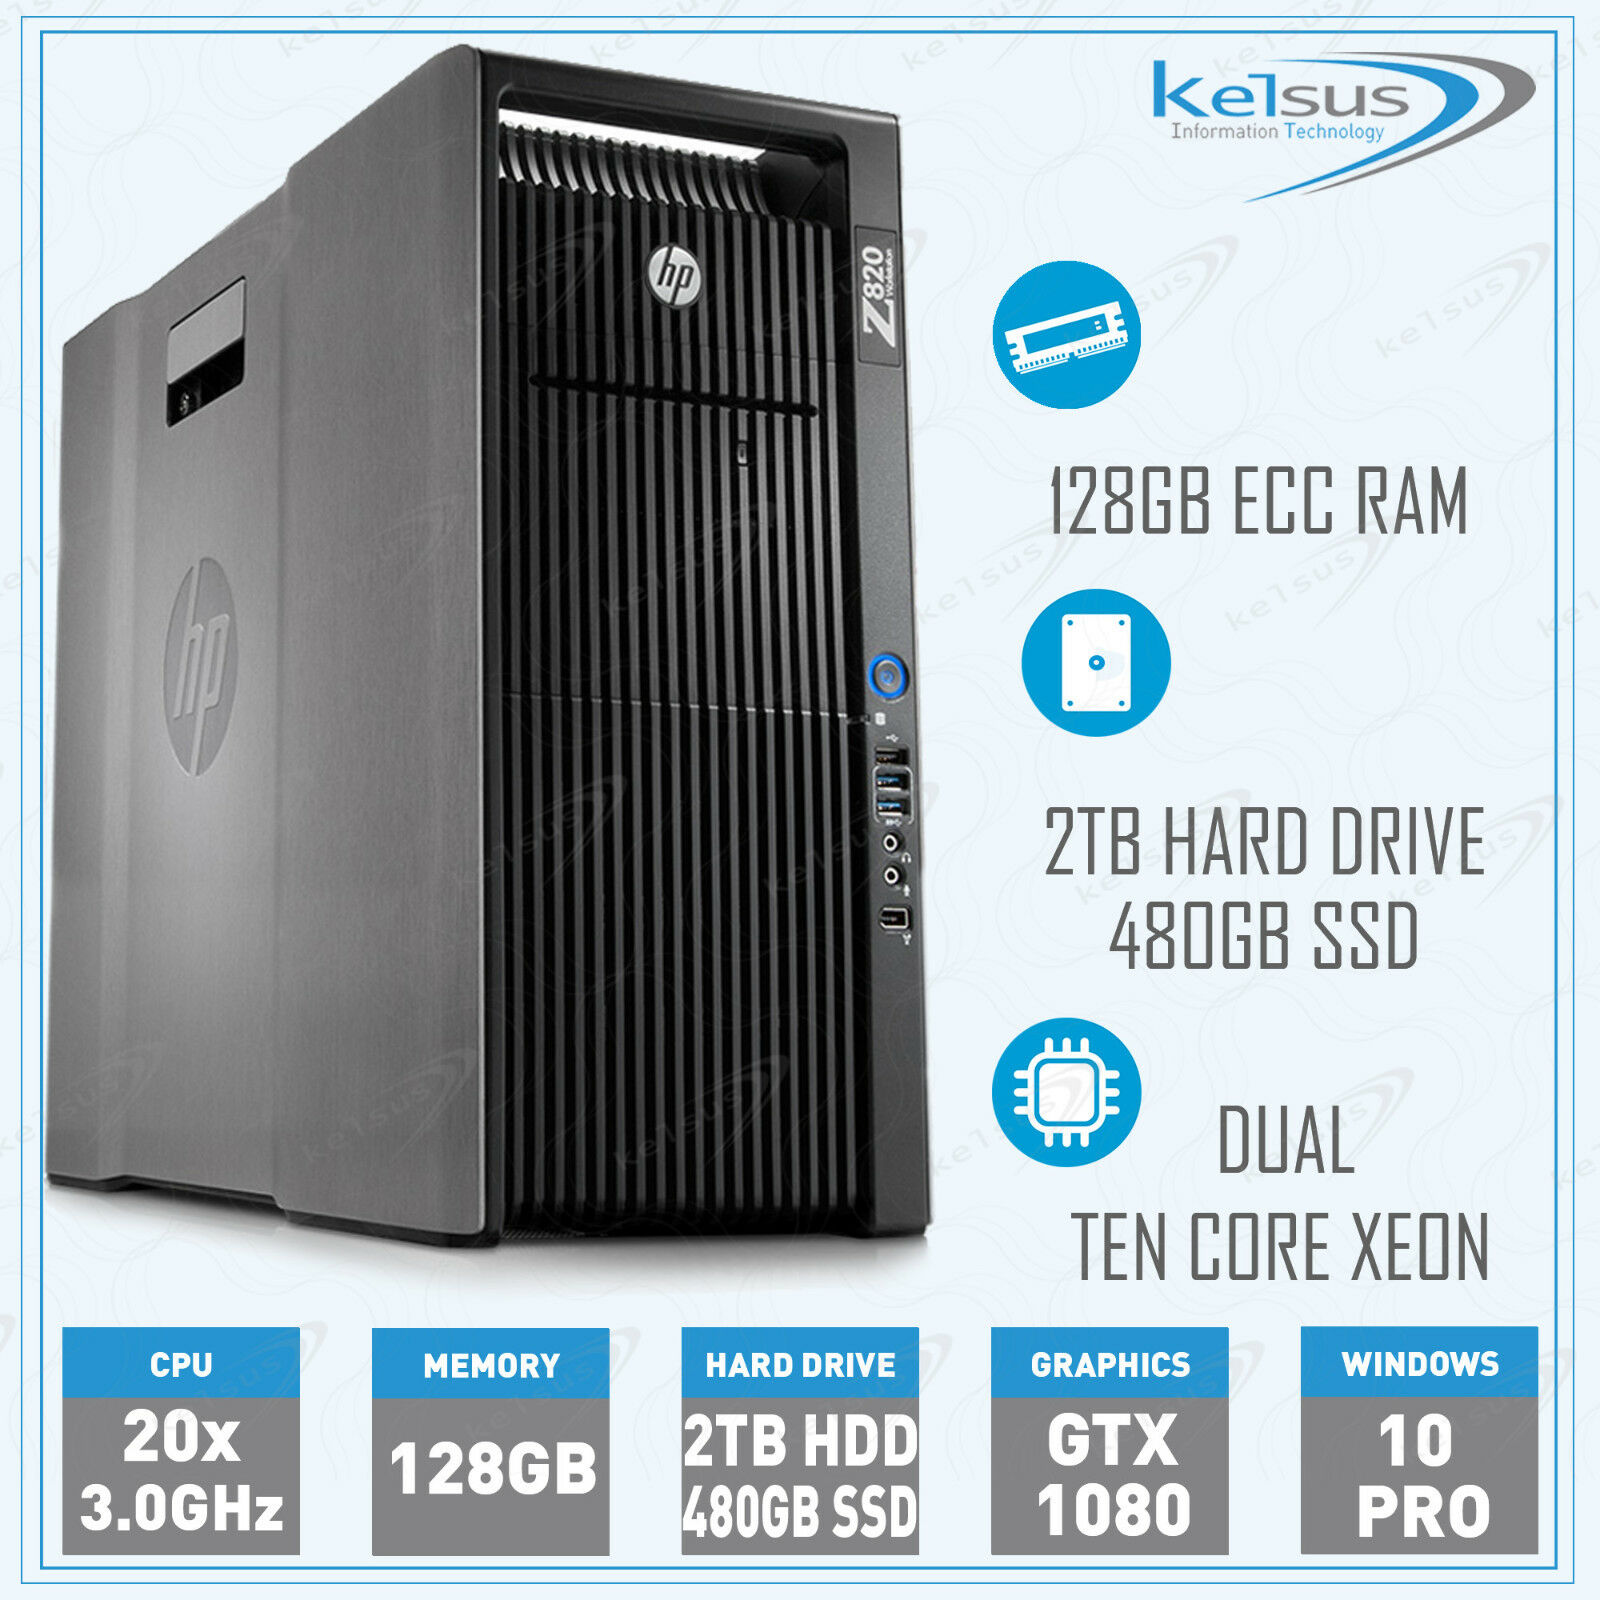 Buy HP Z820 Workstation Dual Xeon Ten Core E5-2690 v2 128GB